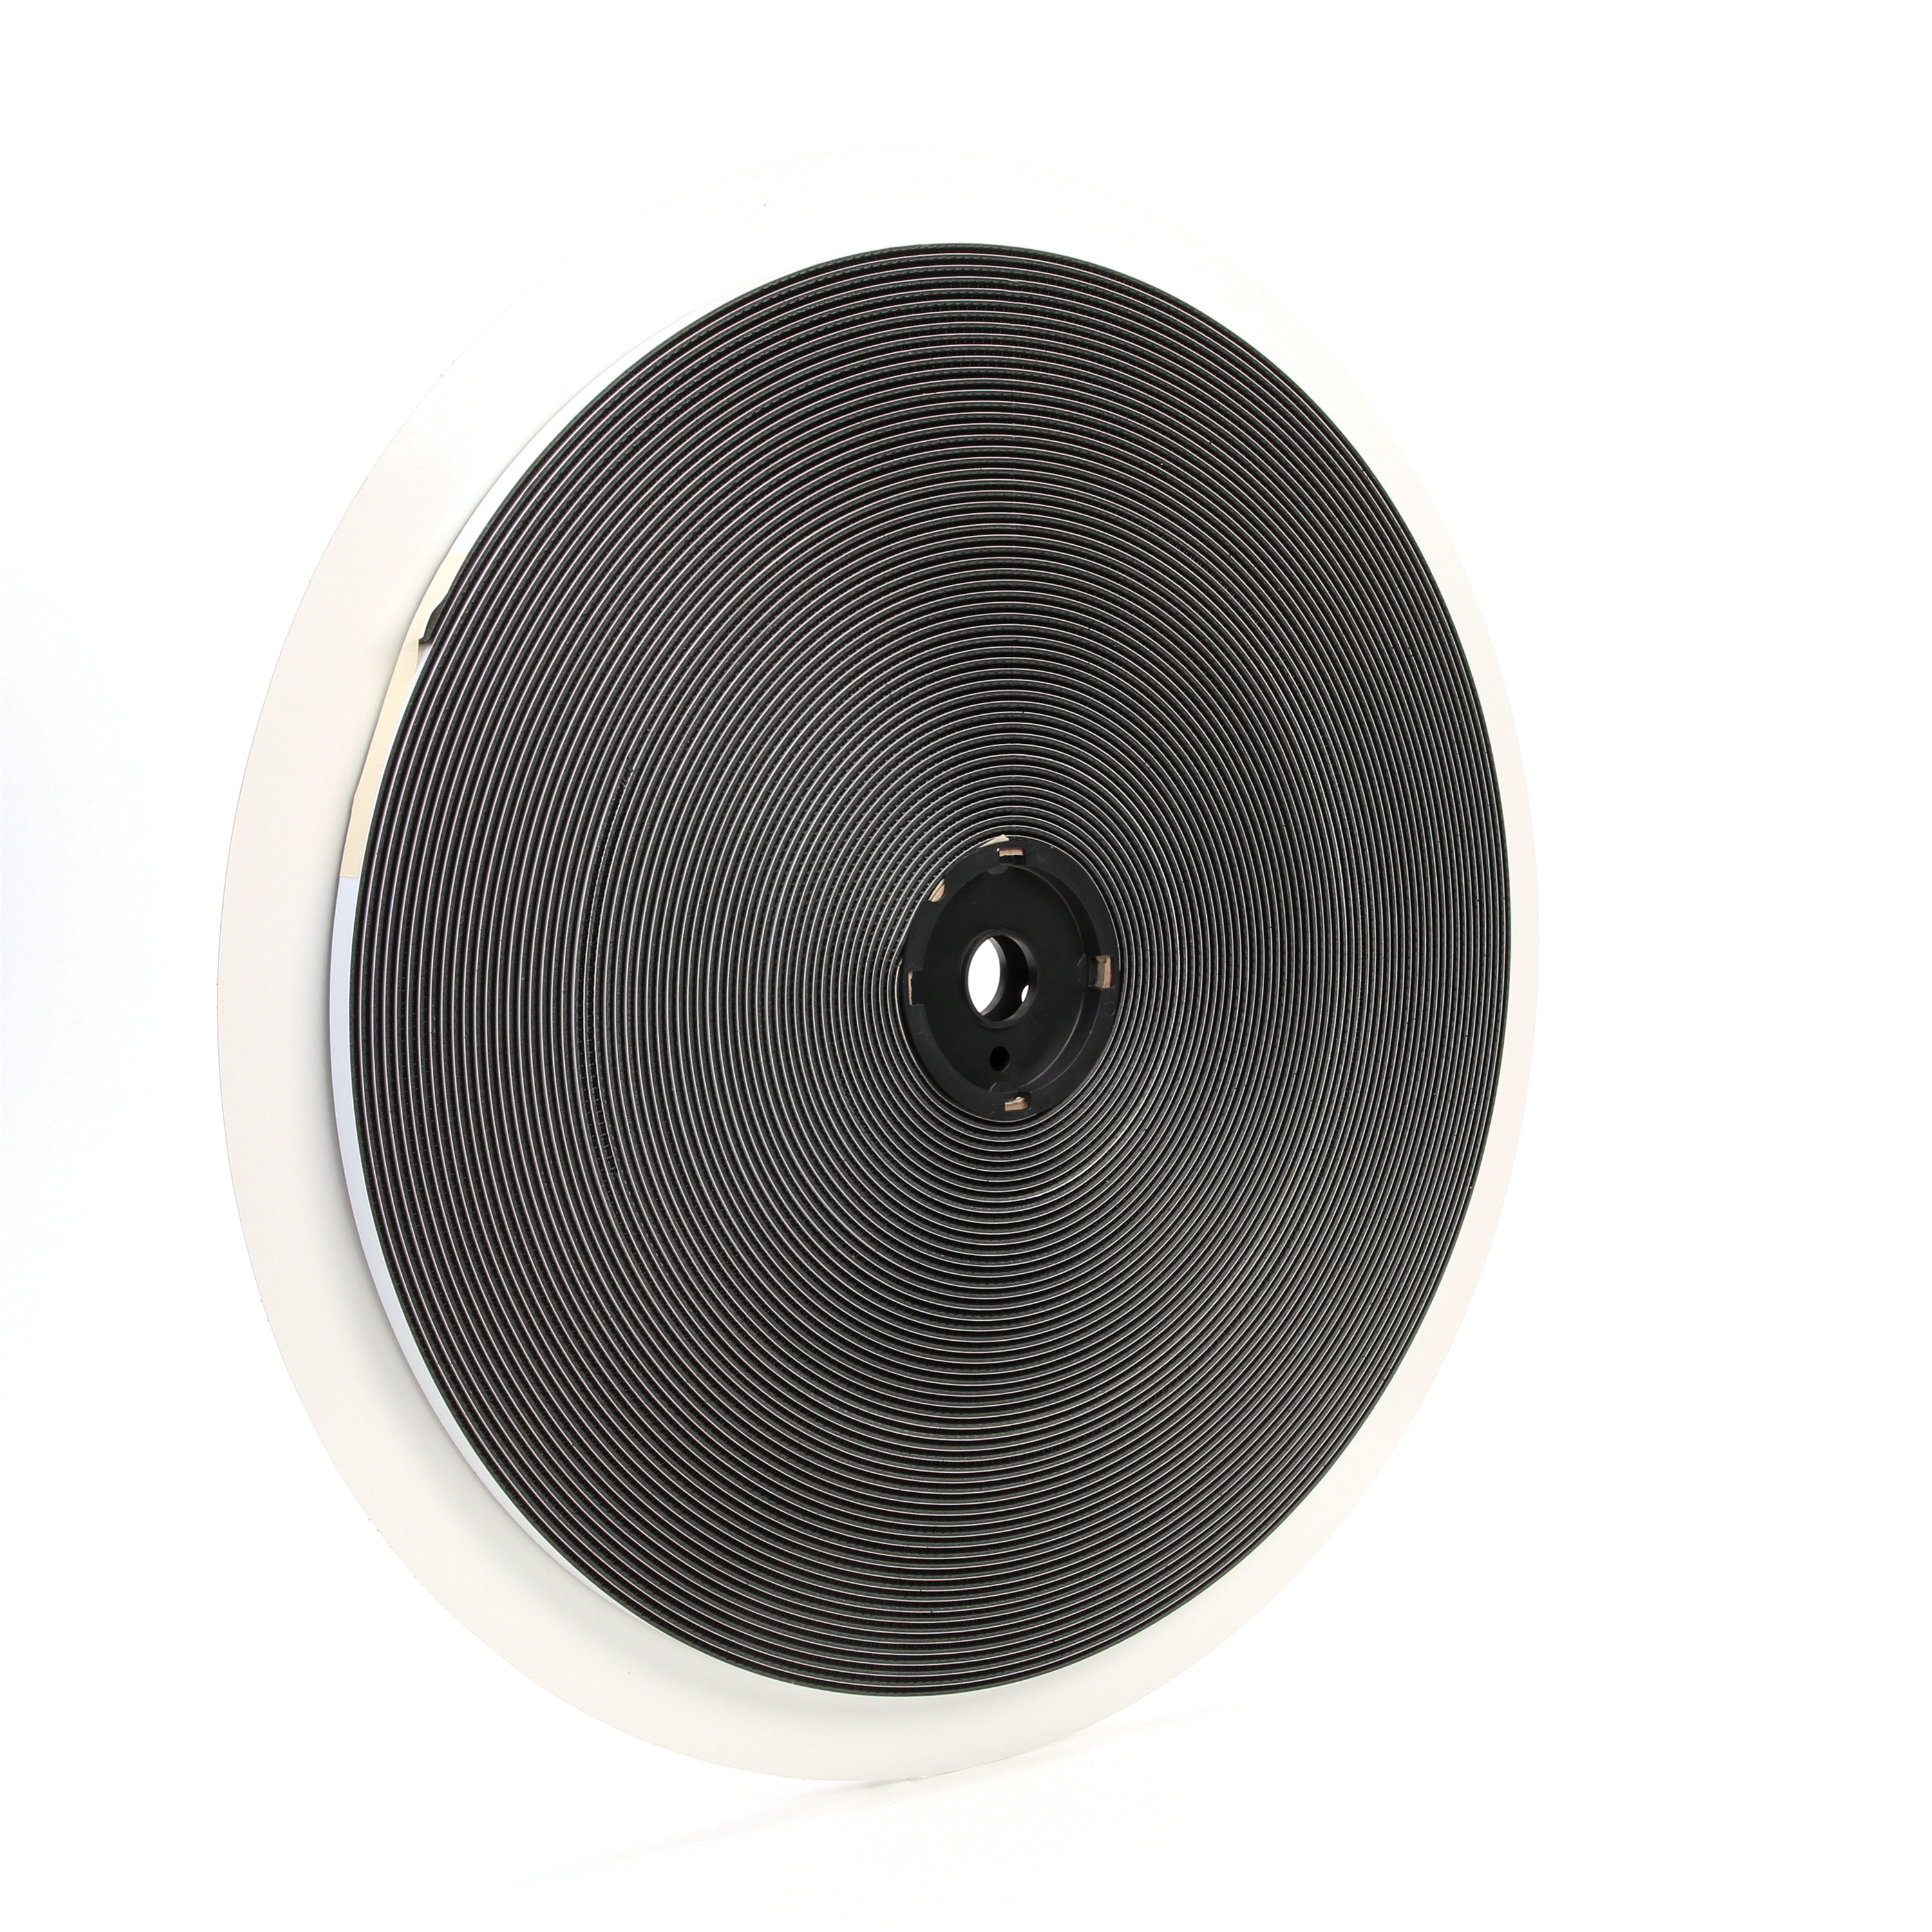 3M™ Dual Lock™ 021200-86347 Mushroom Shaped Reclosable Hook and Loop Fastener Tape, 50 yd L x 1/2 in W, 0.23 in THK Engaged, Synthetic Rubber Adhesive, Polypropylene Backing, Black